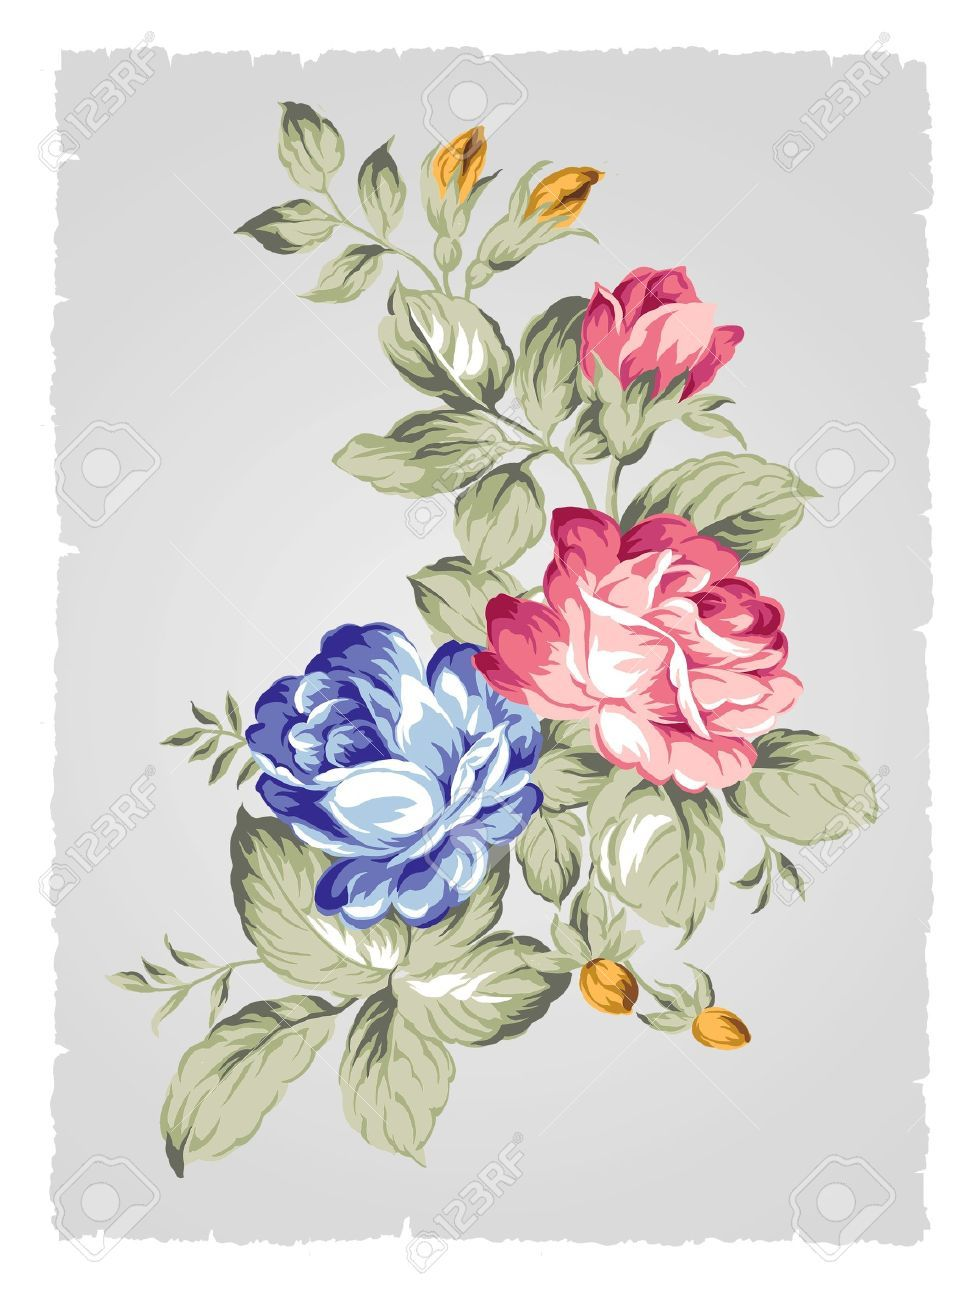 Fabric Painting Flower Patterns Bunch Google Search Designer